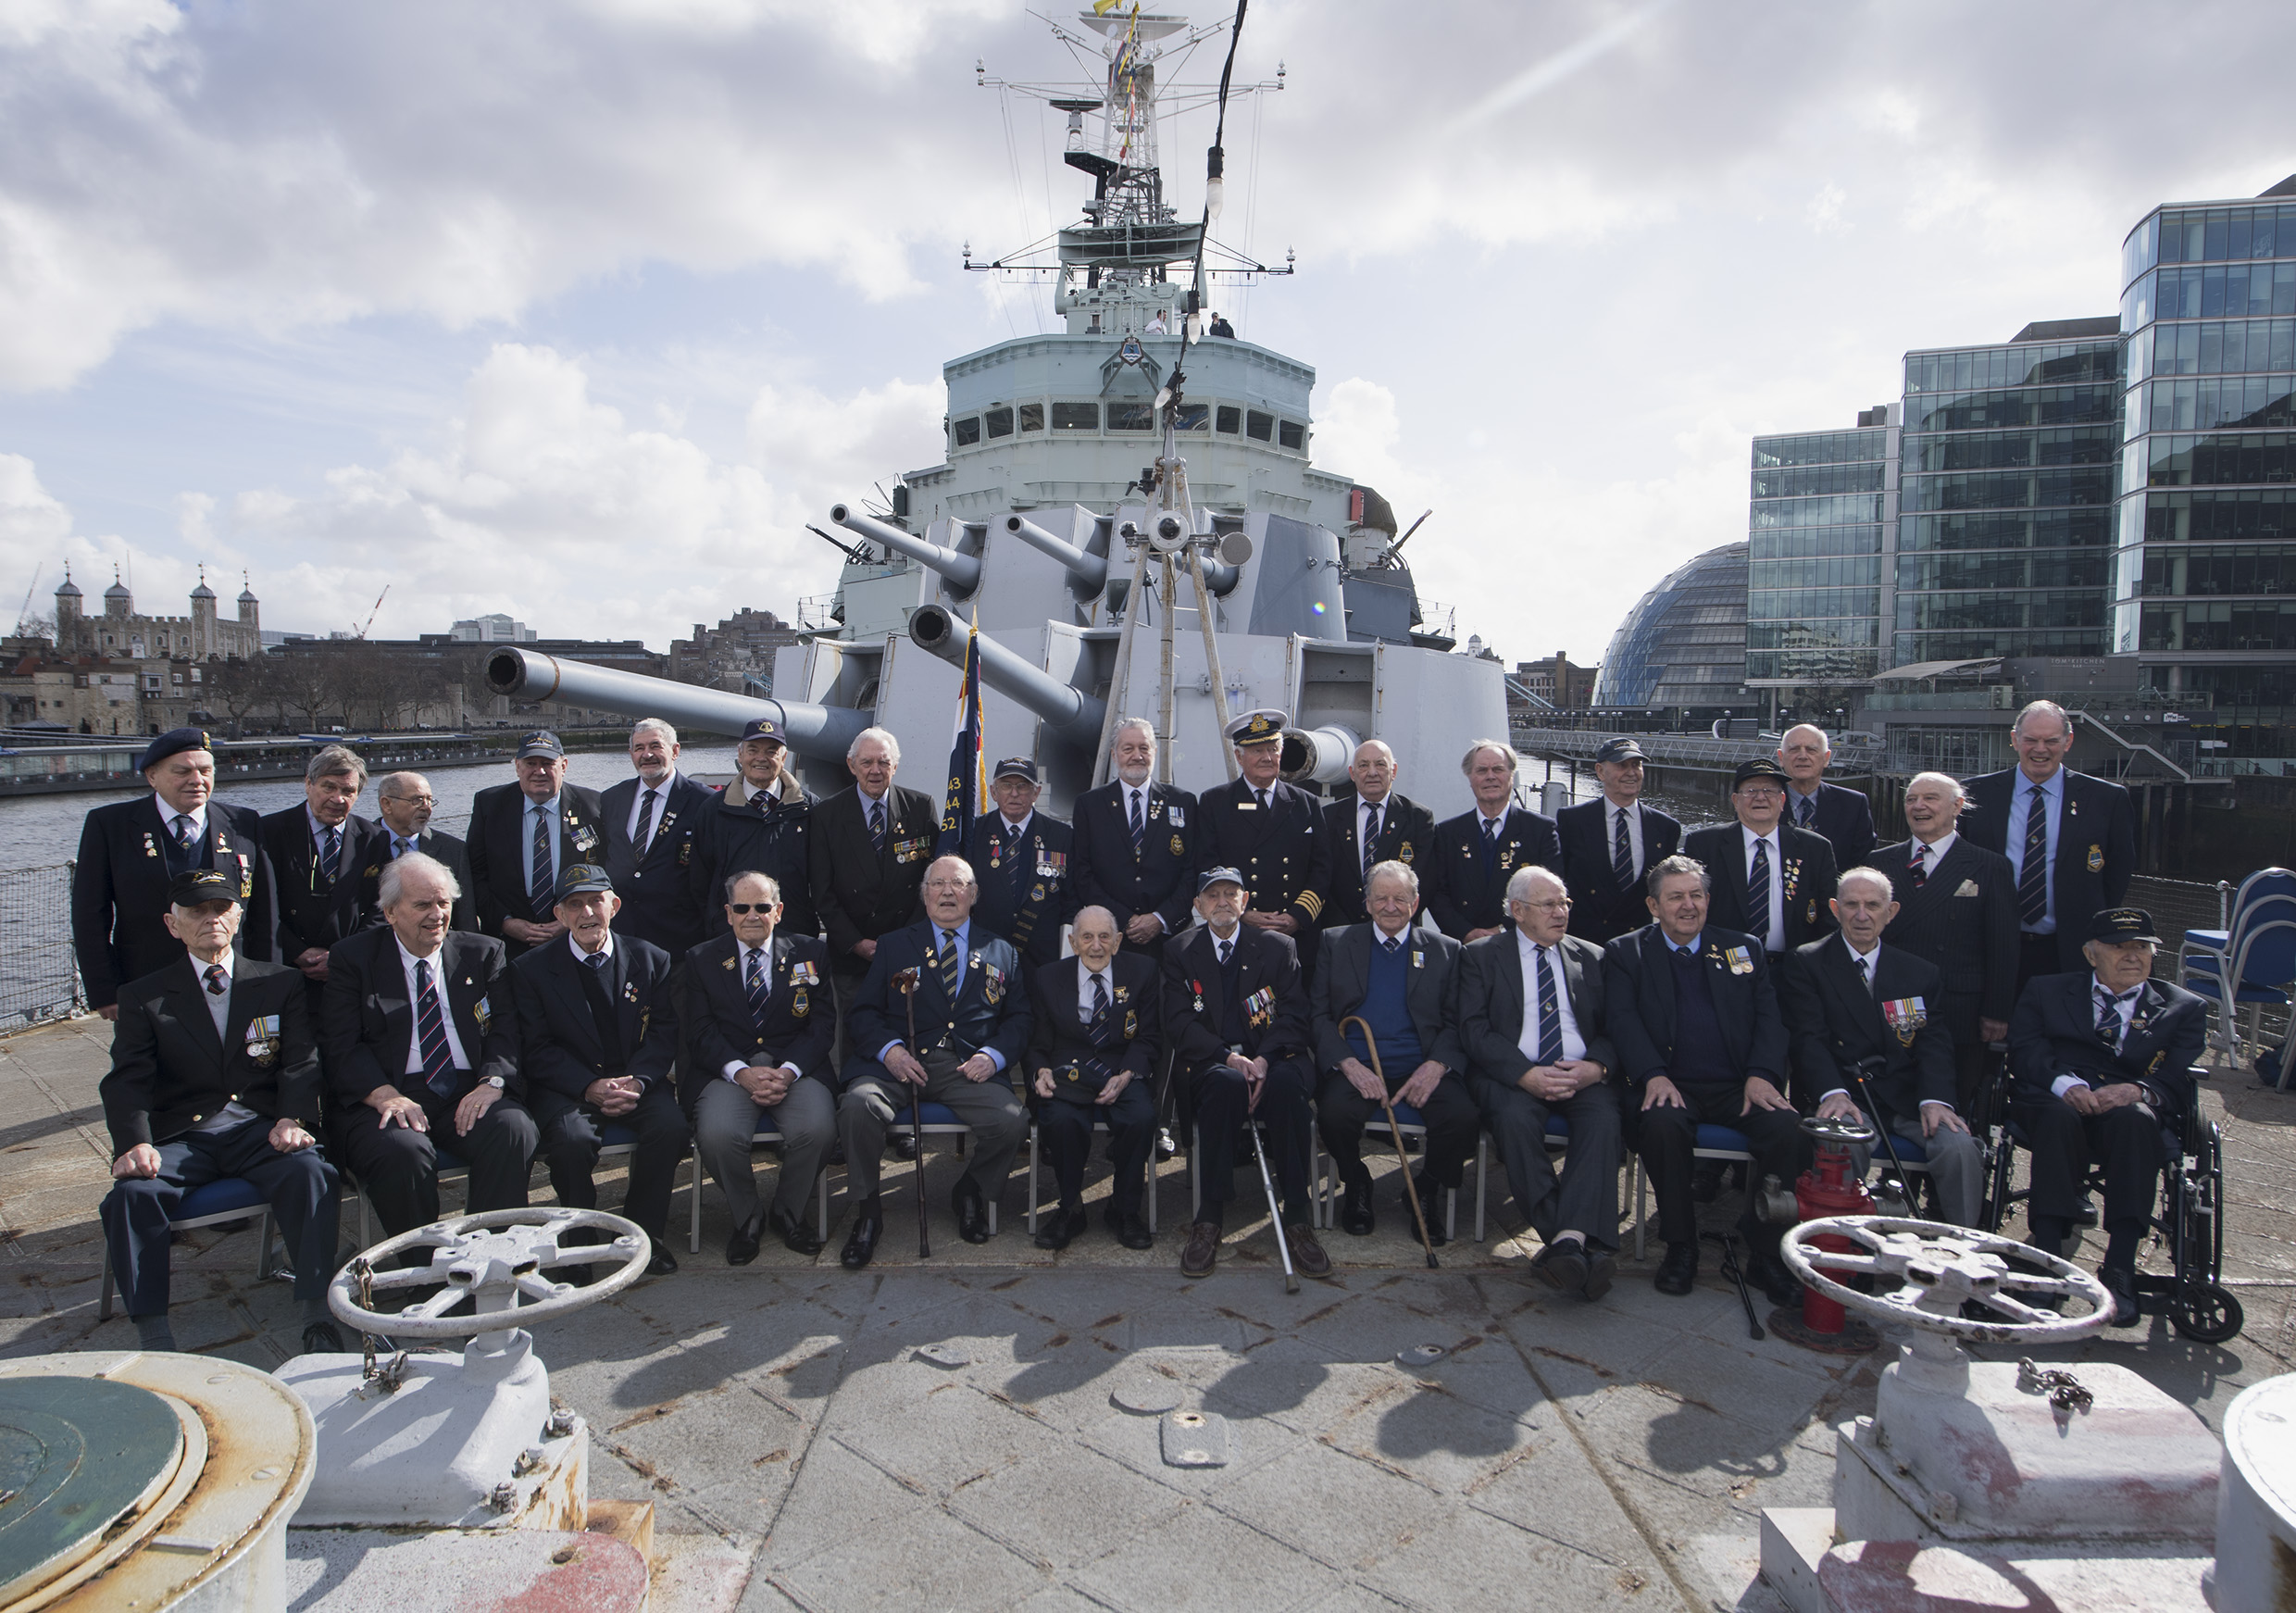 Veterans of HMS Belfast gather to celebrate her 80th birthday, March 16 2018